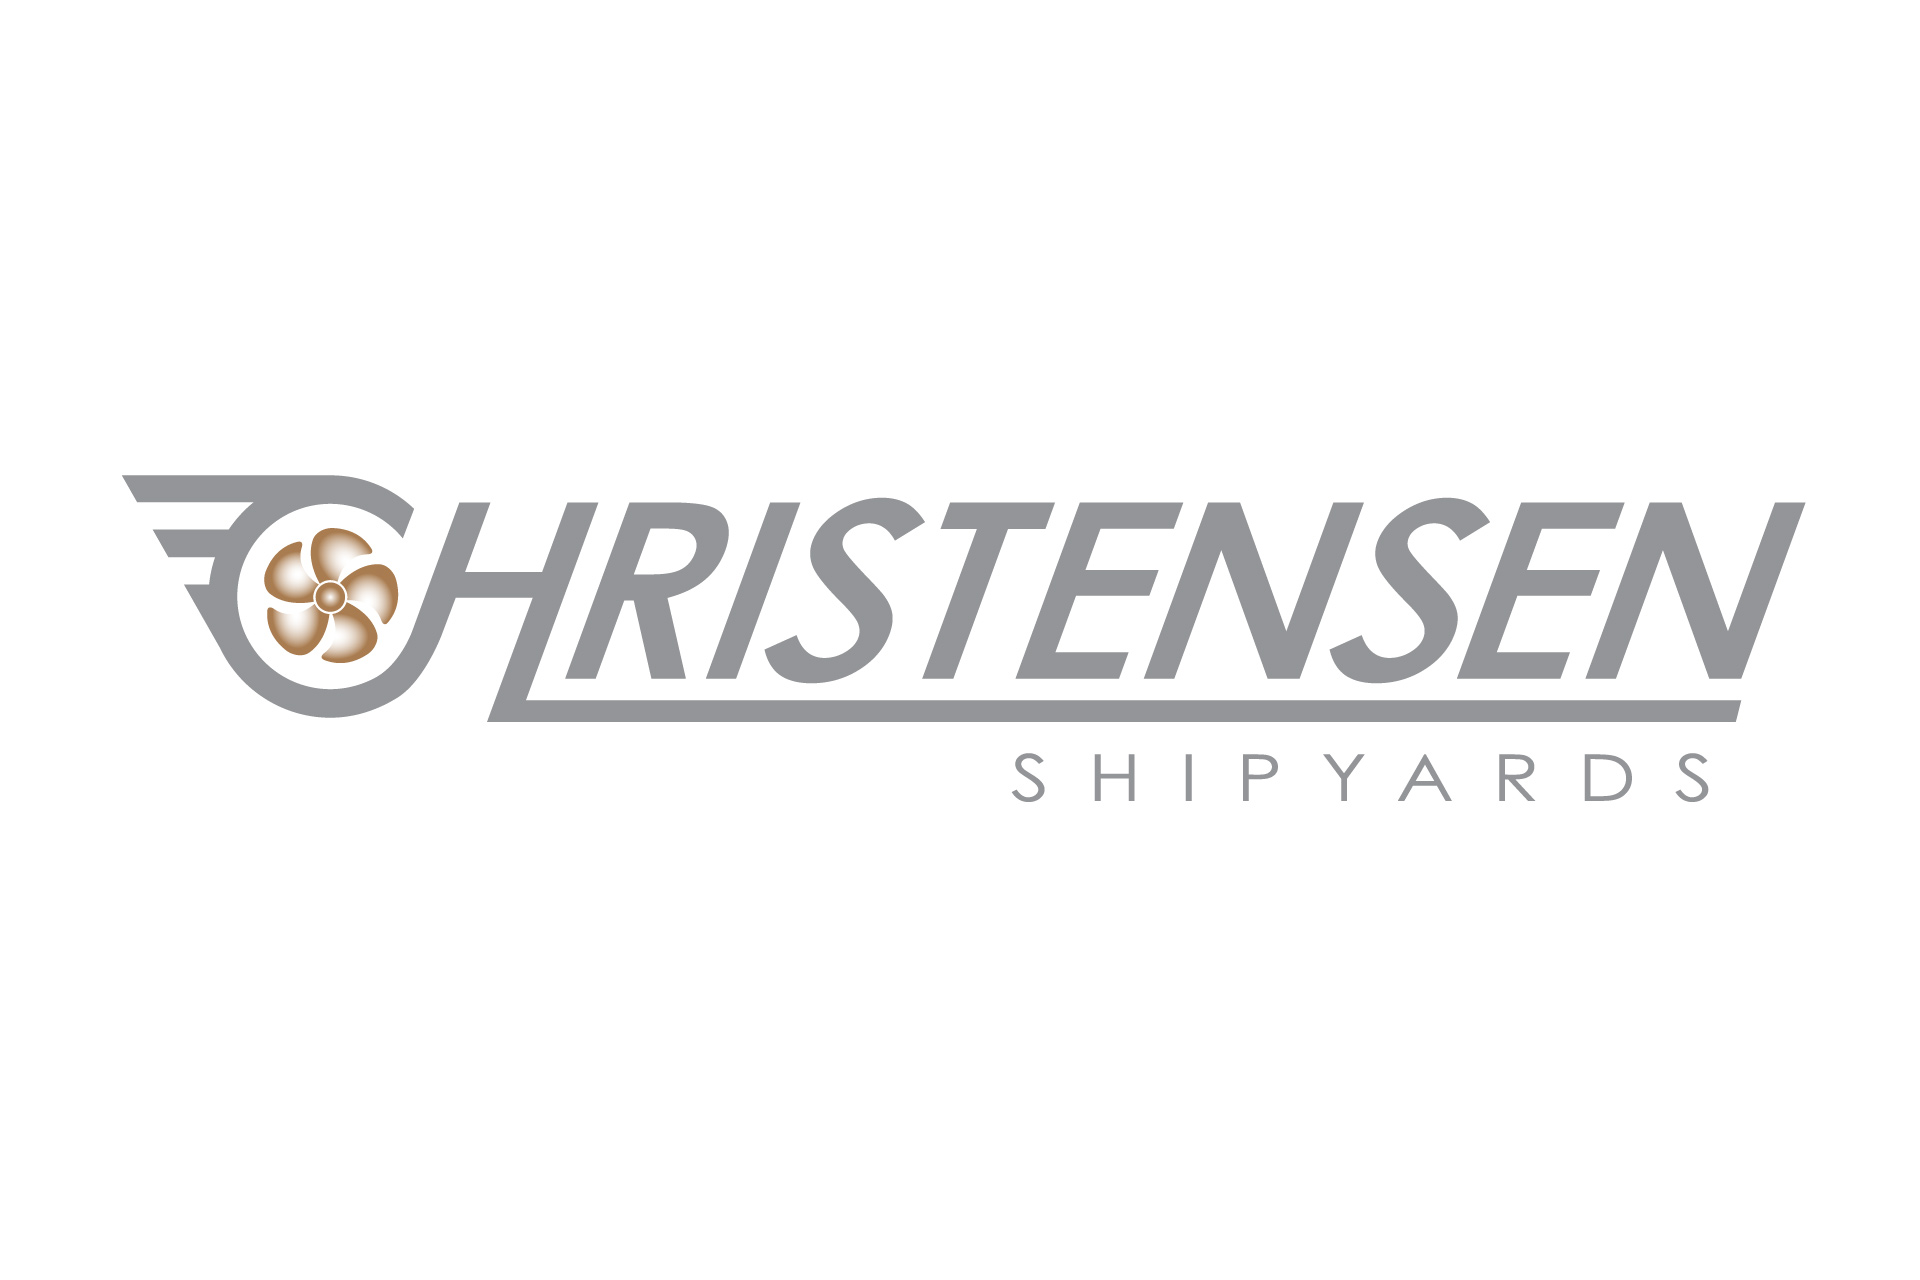 Christensen Shipyards